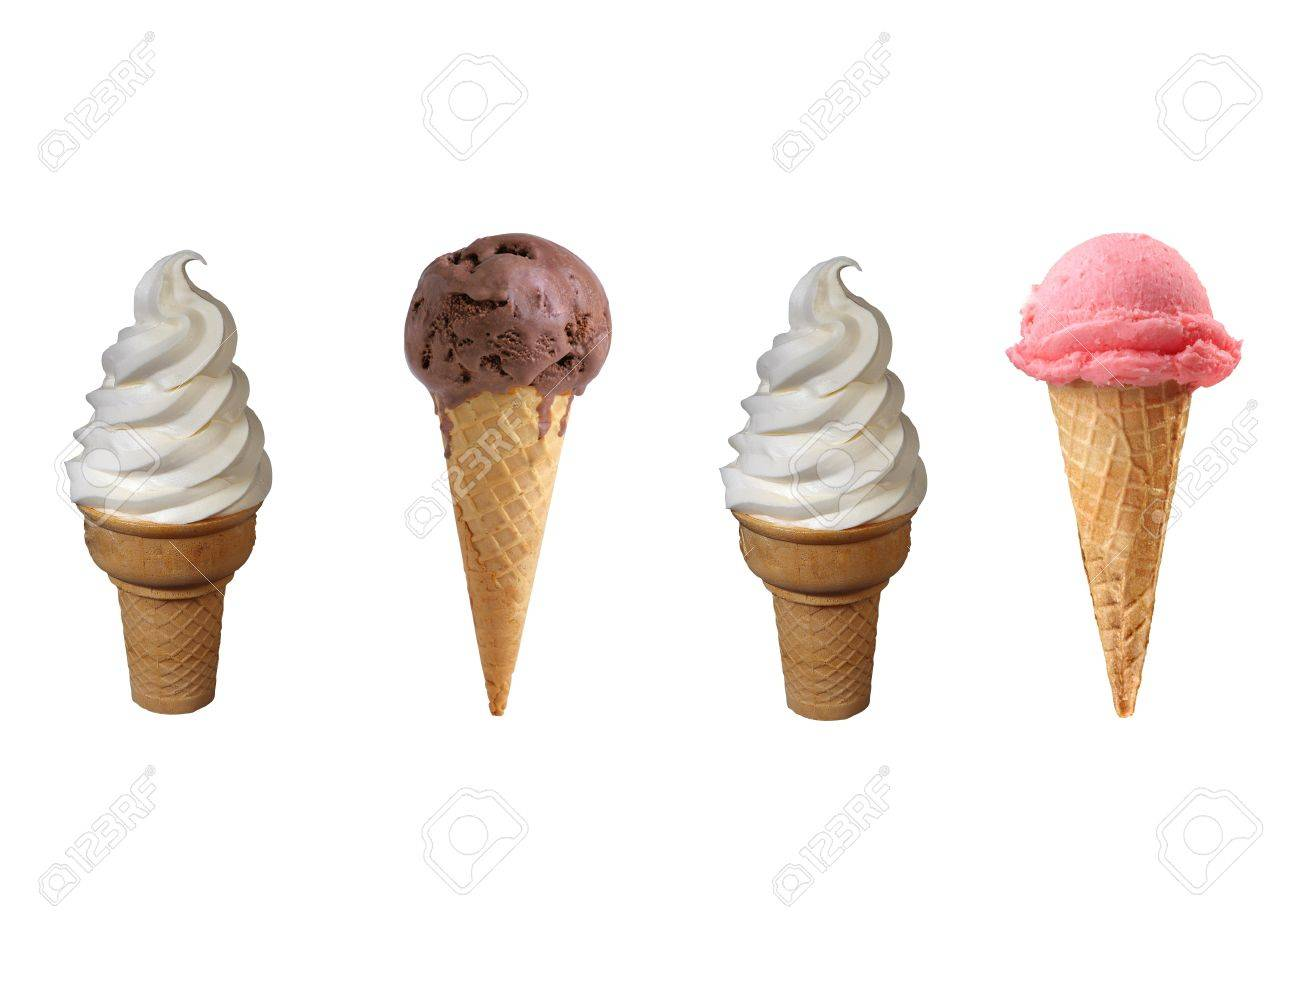 Assorted ice cream in sugar cones isolated on white background Stock Photo - 14093230